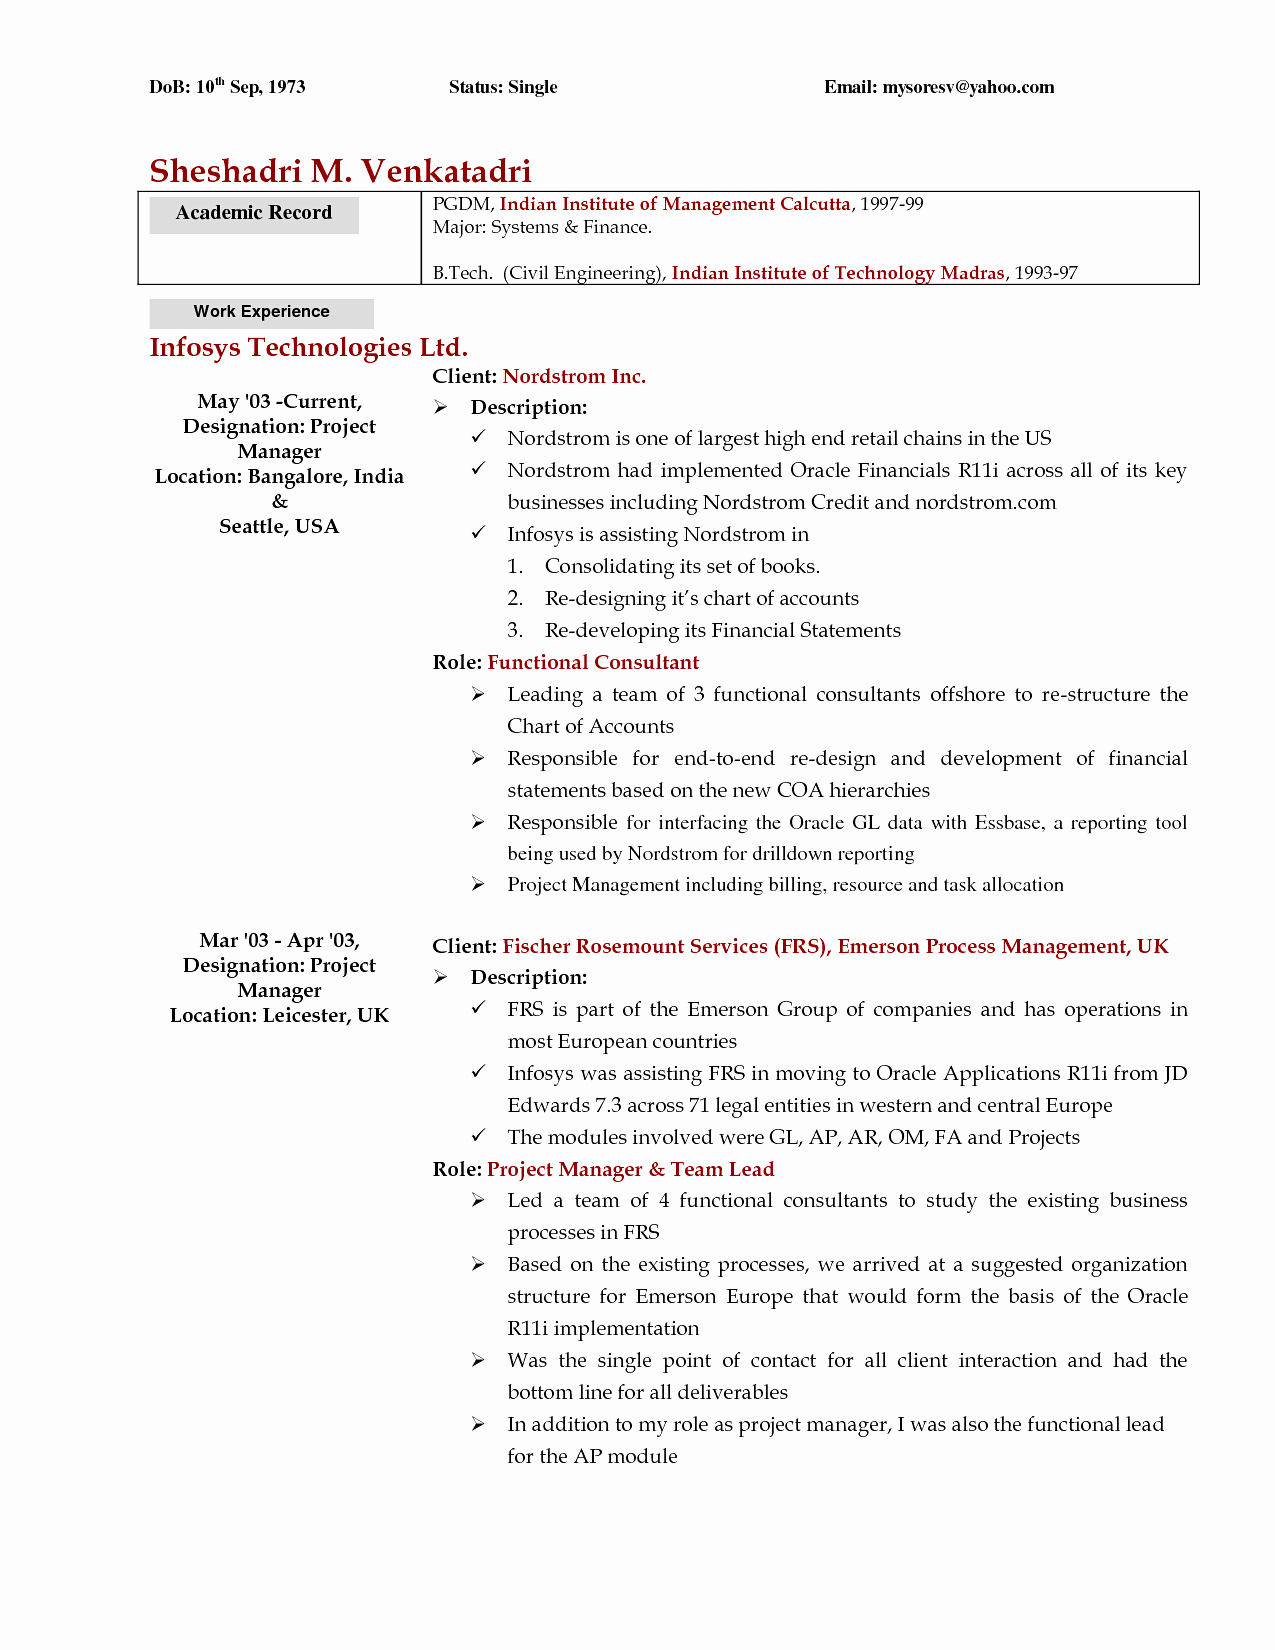 Personal Cover Letter Template - Resume Personal Statement Examples Elegant Od Consultant Cover